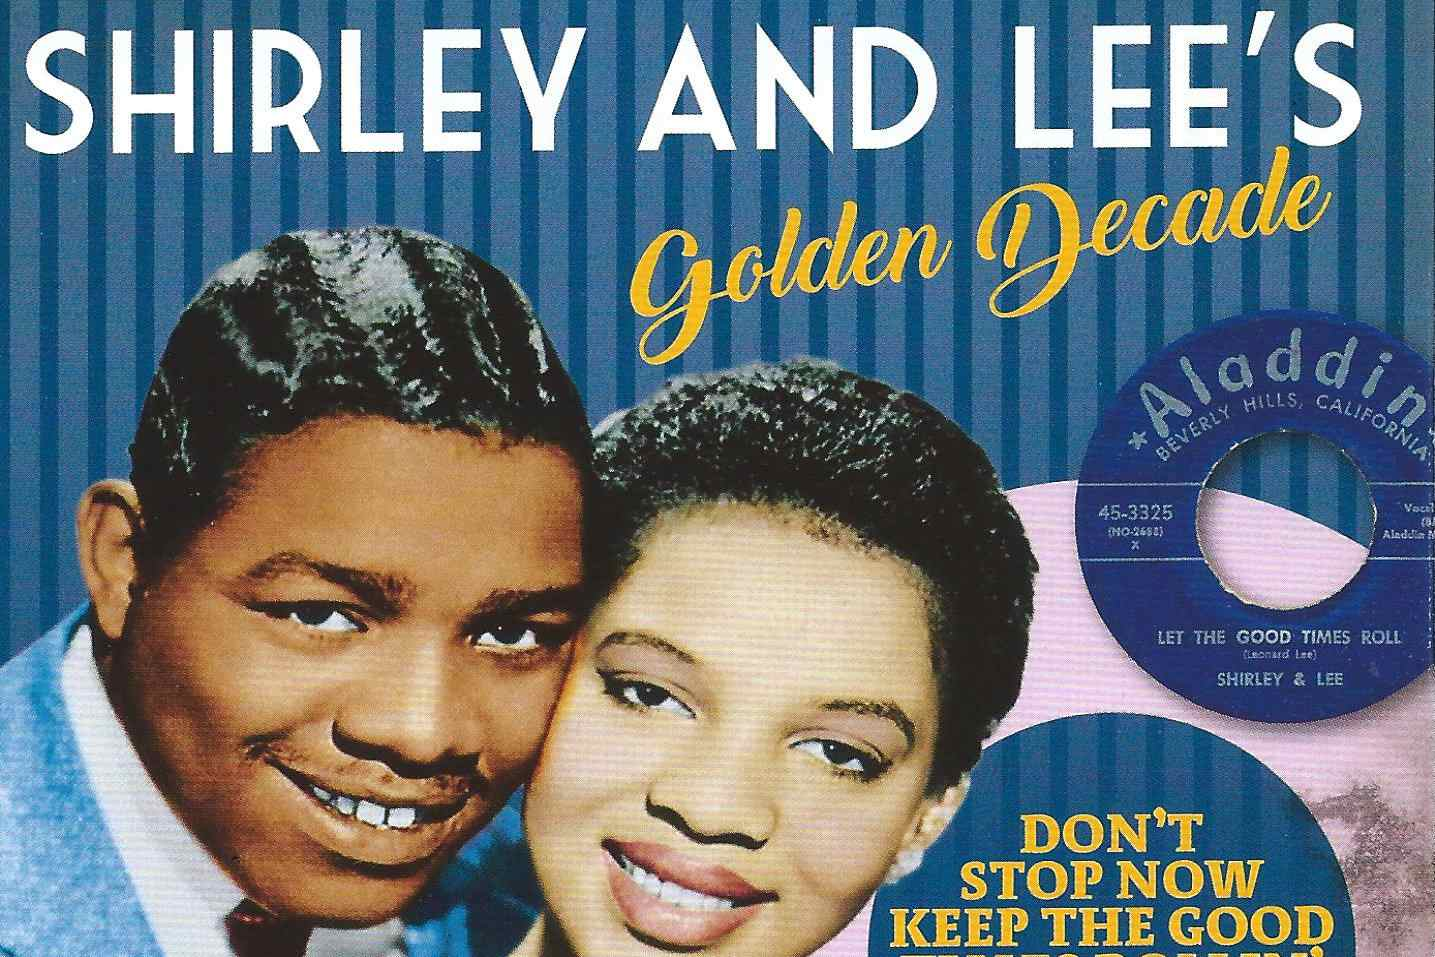 Let The Good Times Roll by Shirley and Lee